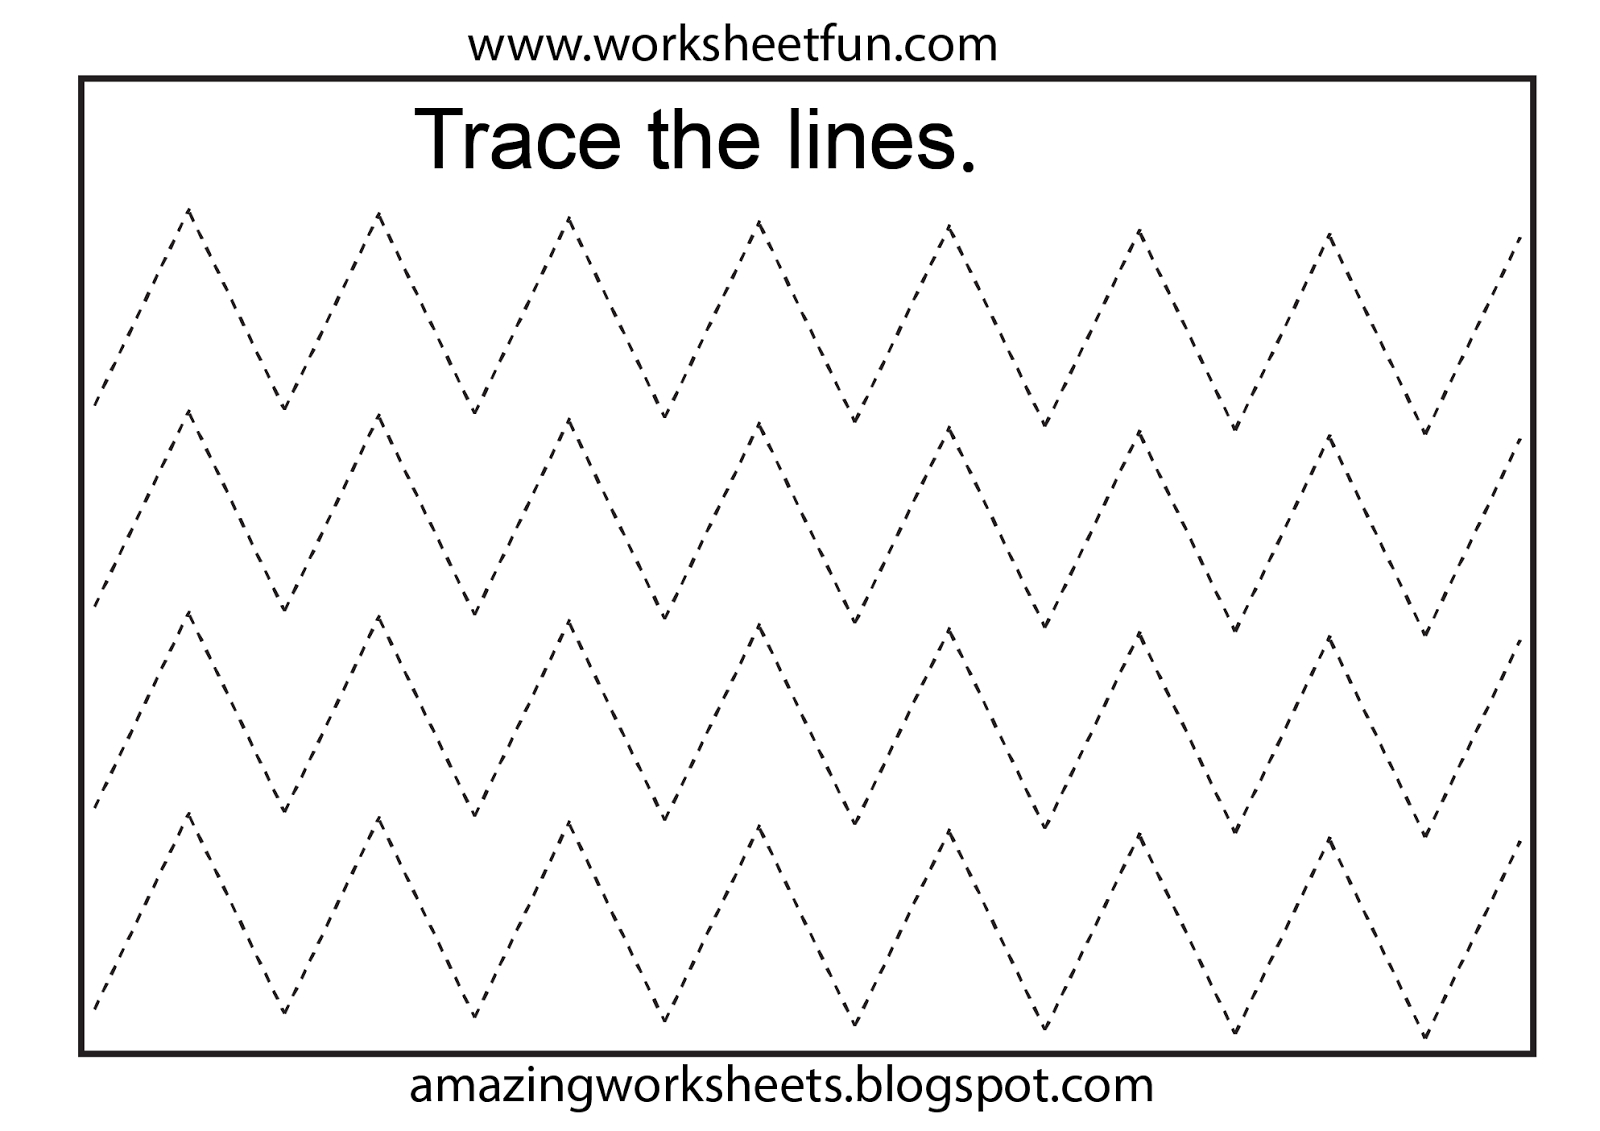 Free Printable Tracing Worksheets Preschool | Preschool Worksheets - Free Printable Fine Motor Skills Worksheets